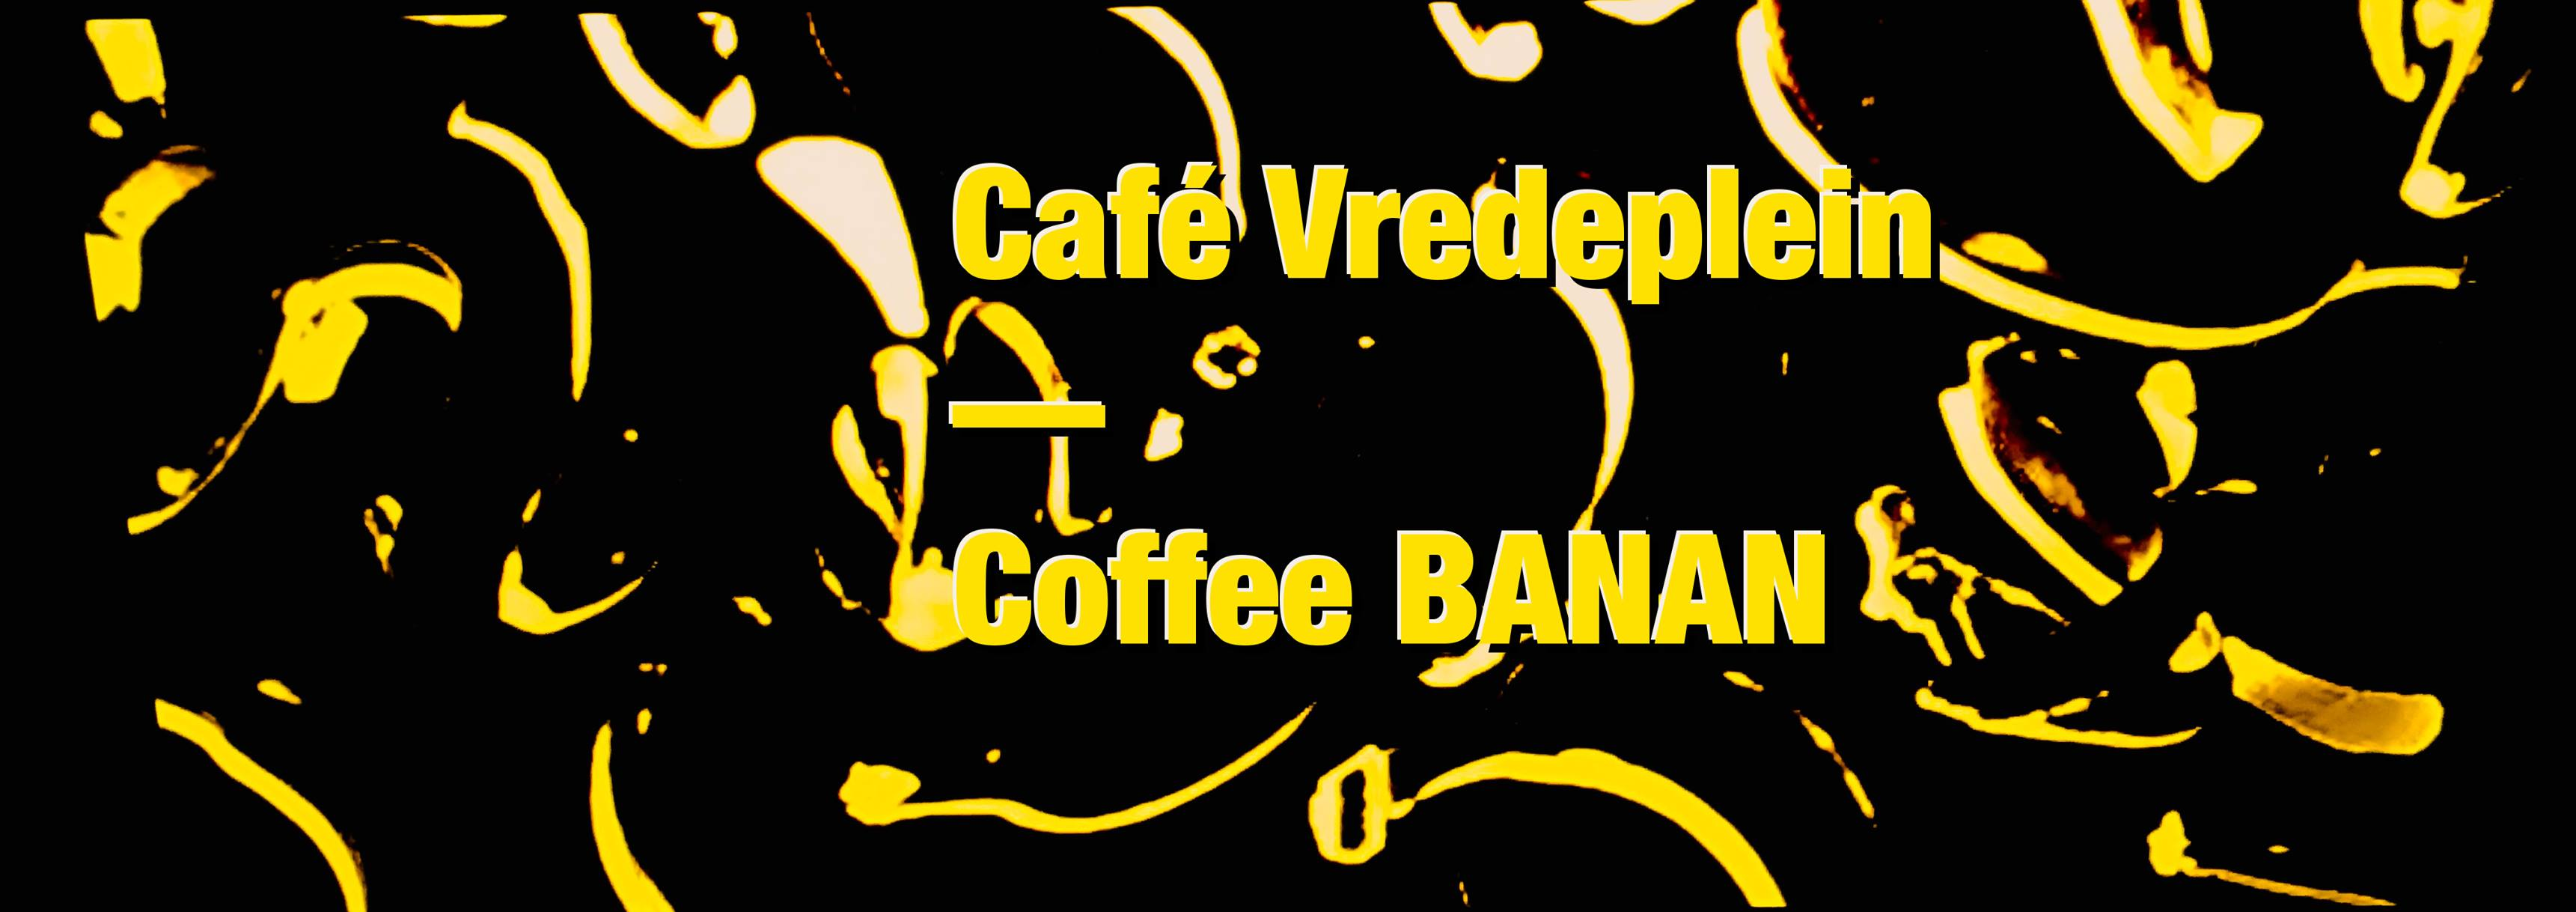 18 09 20 Coffee BananCafé Vredeplein Zaterdag 22 september 2018